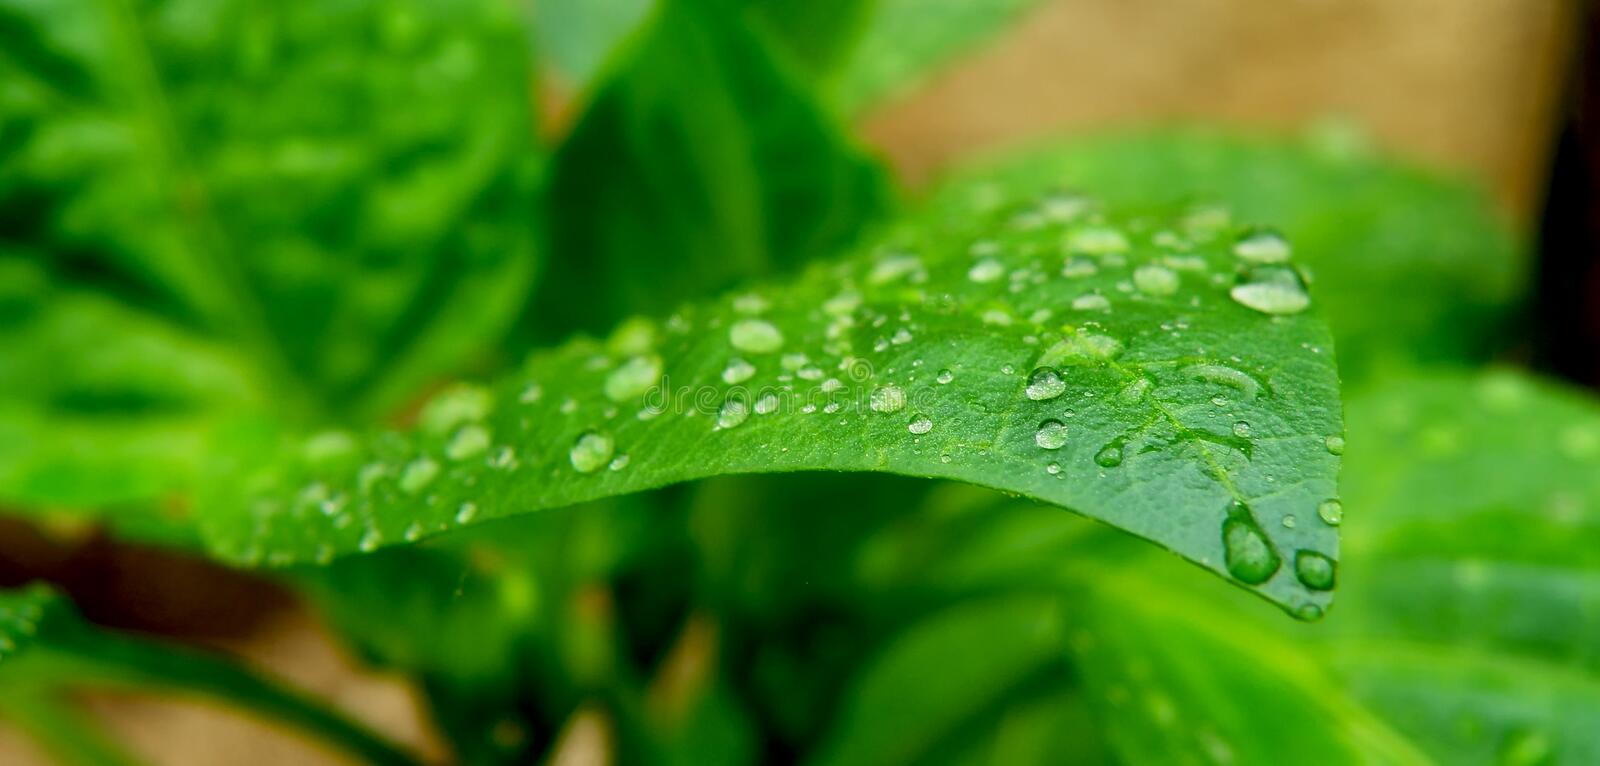 Download Wate Drops On Leaf Stock Image - Image: 24609421